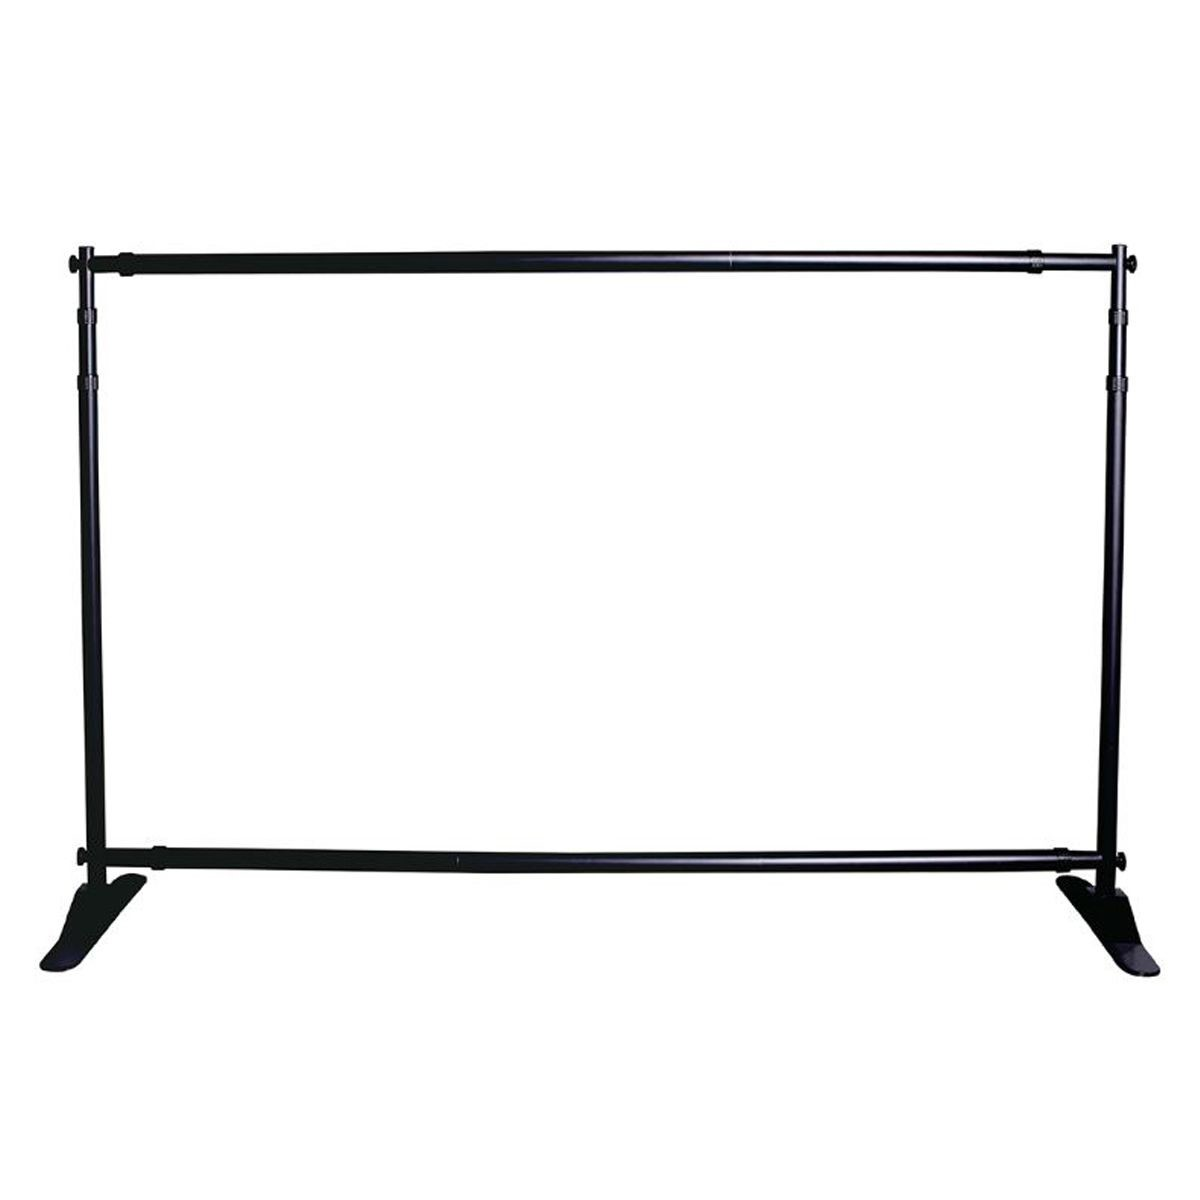 Hardware Frame for Step and Repeat Backdrops